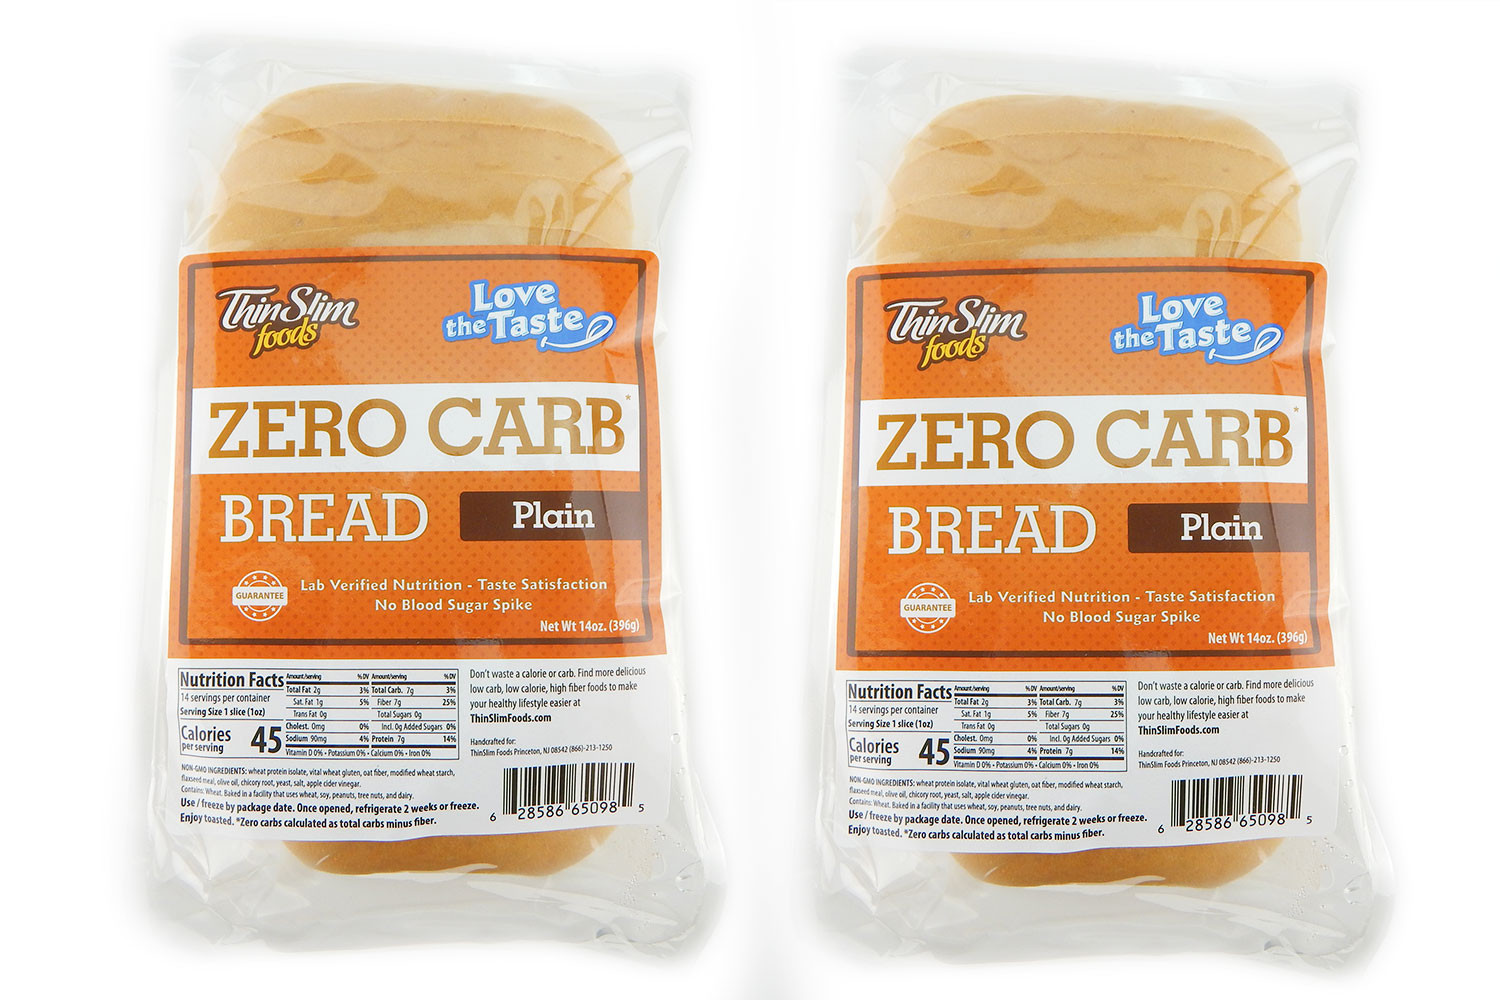 0 Carb Bread  ThinSlim Foods Love the Taste Low Carb Bread Plain 2pack